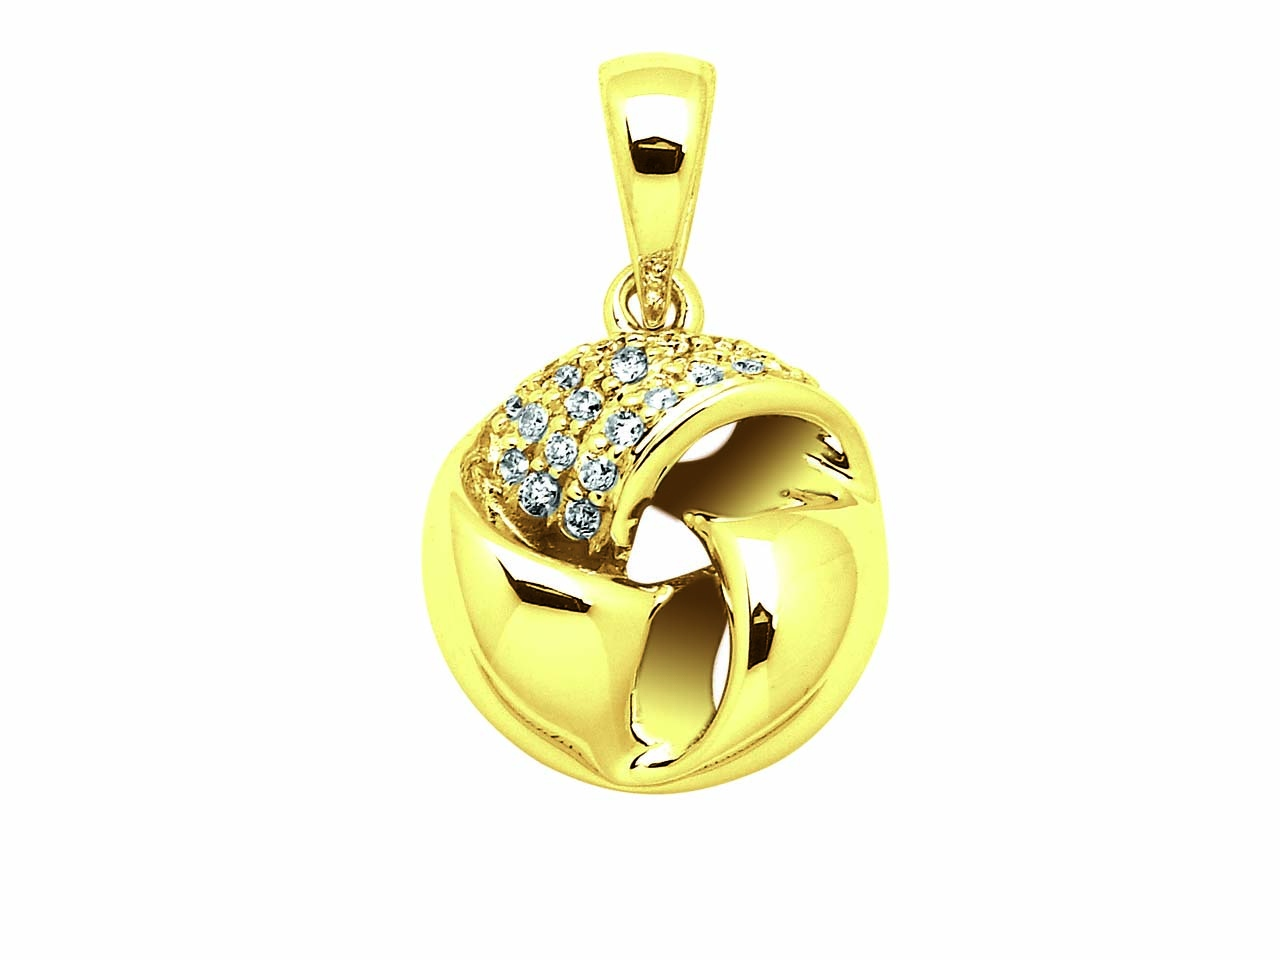 Pendentif boule, Or jaune, diamants 0,124 ct